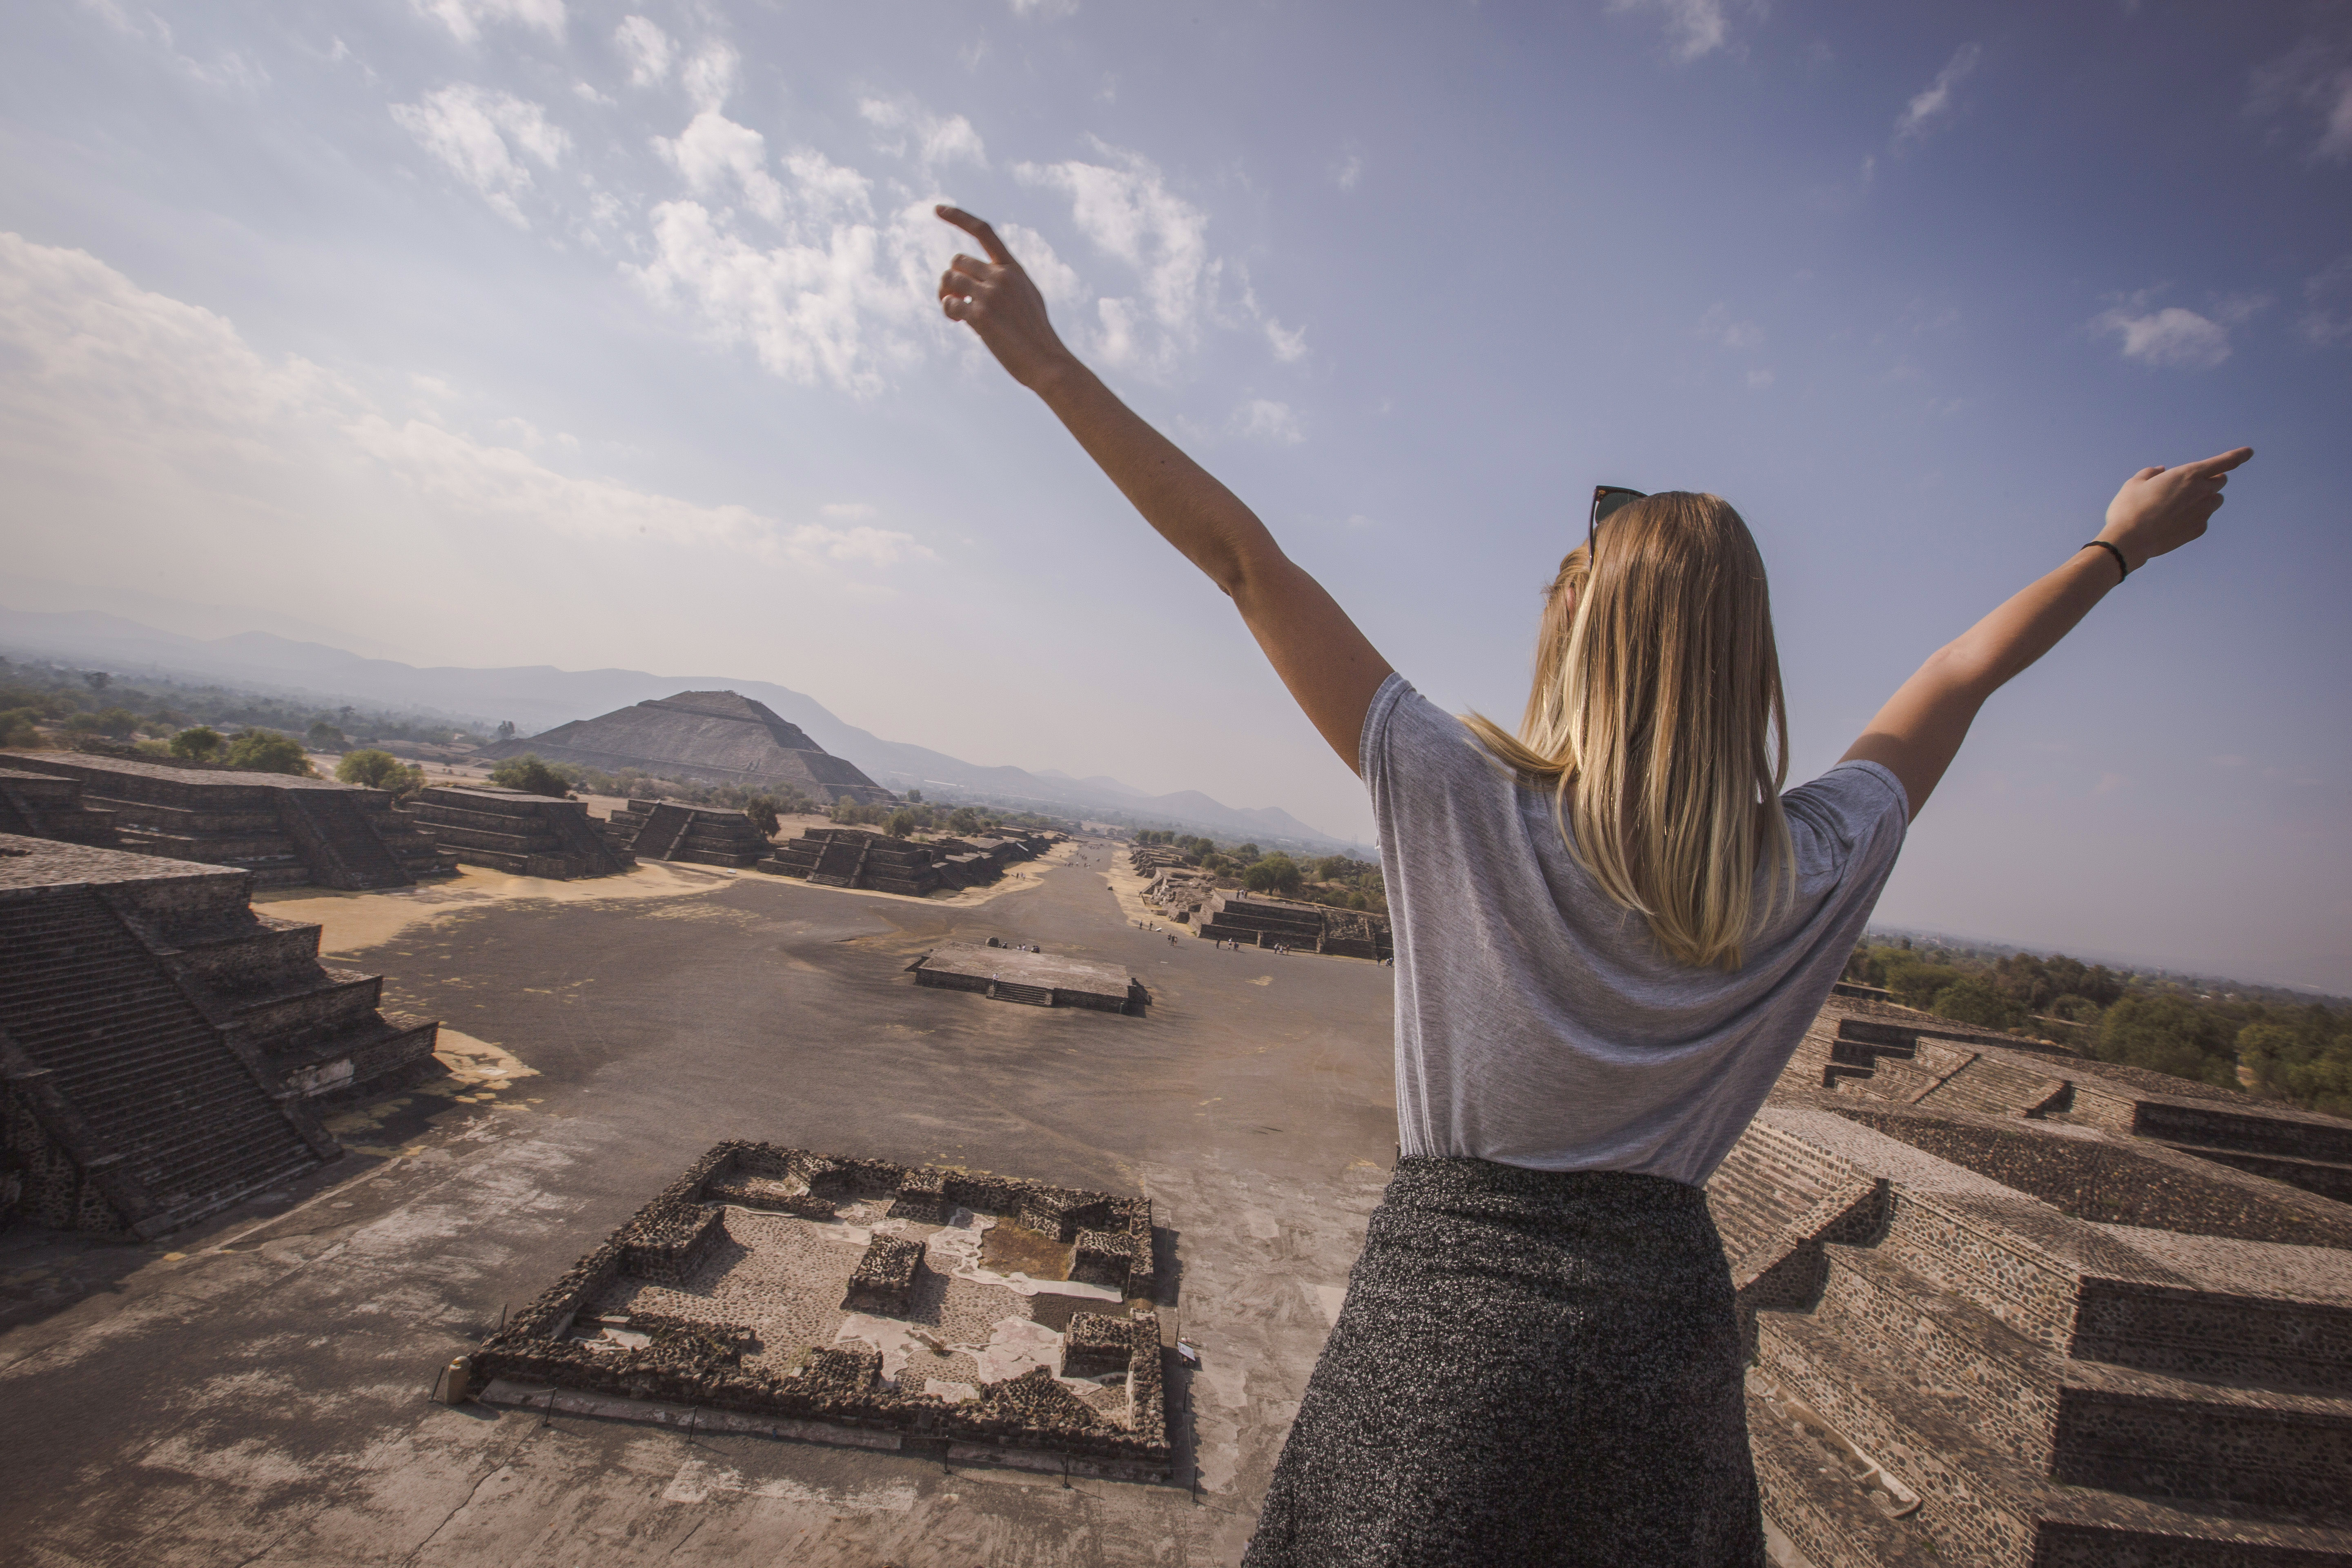 Mexico Teotihuacan Top of Pyramid of the Moon Female Traveller - Oana Dragan 2017 0M4A0723 Lg RGB